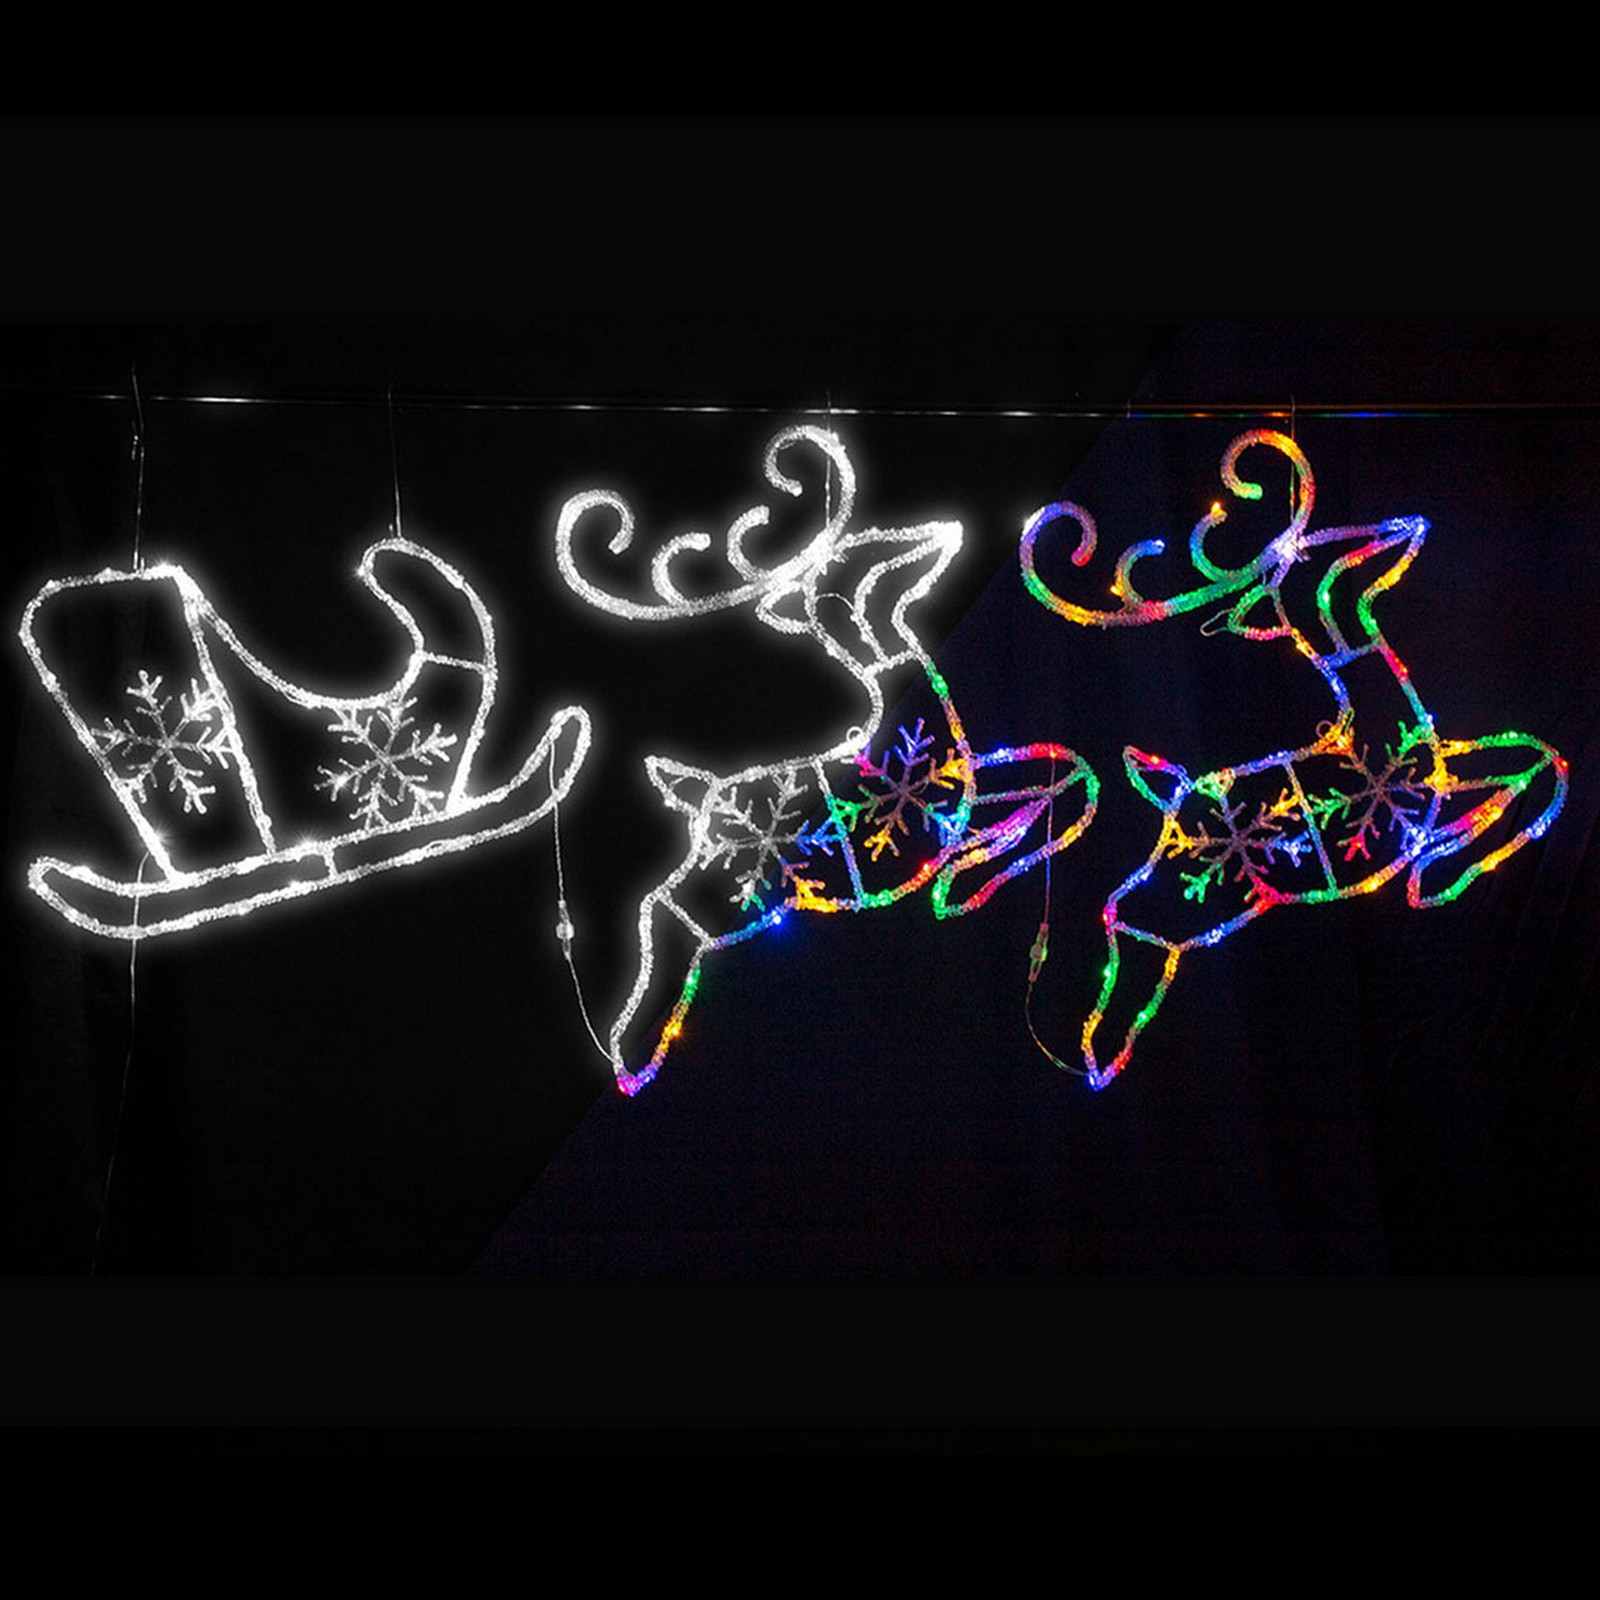 Led Acrylic 2-Deer Sleigh - Cool White, Multi Colour